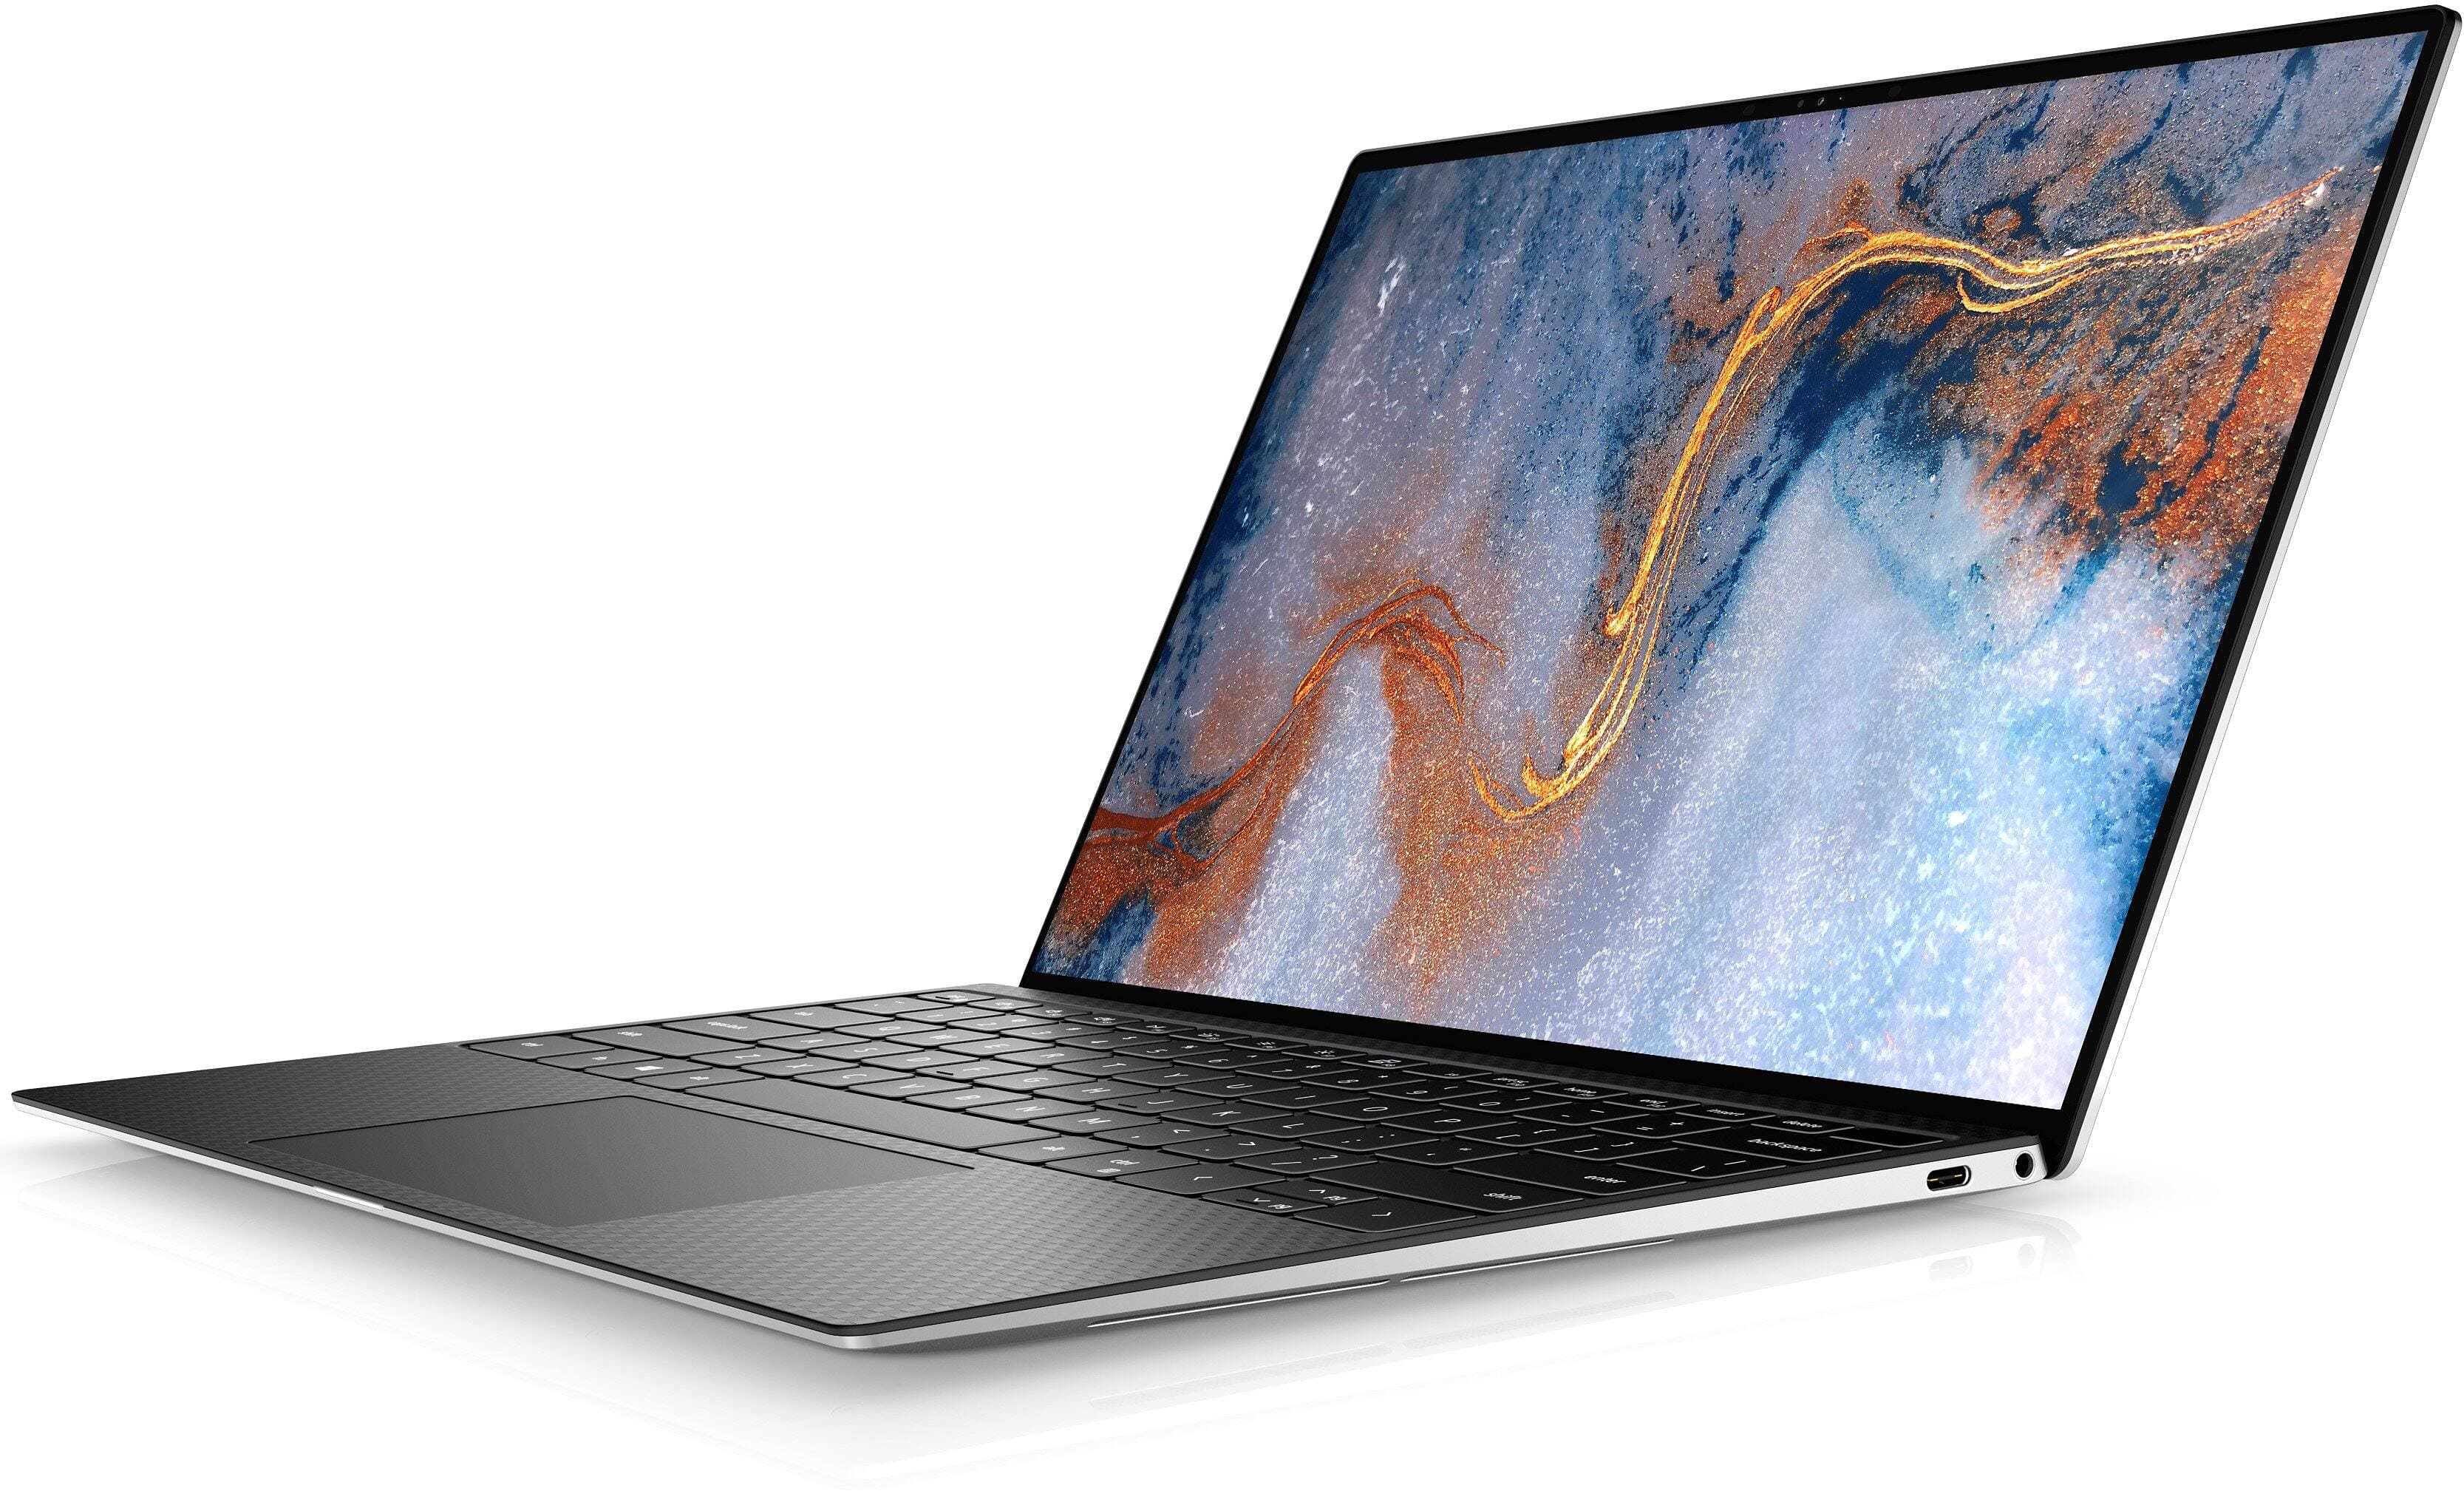 """Dell XPS 13 Touch Laptop: i7-1165G7, 8GB, 256GB SSD, 13.4"""" 1920x1200 & more $899 (or Less w/ Cashback) + free s/h @ Dell"""